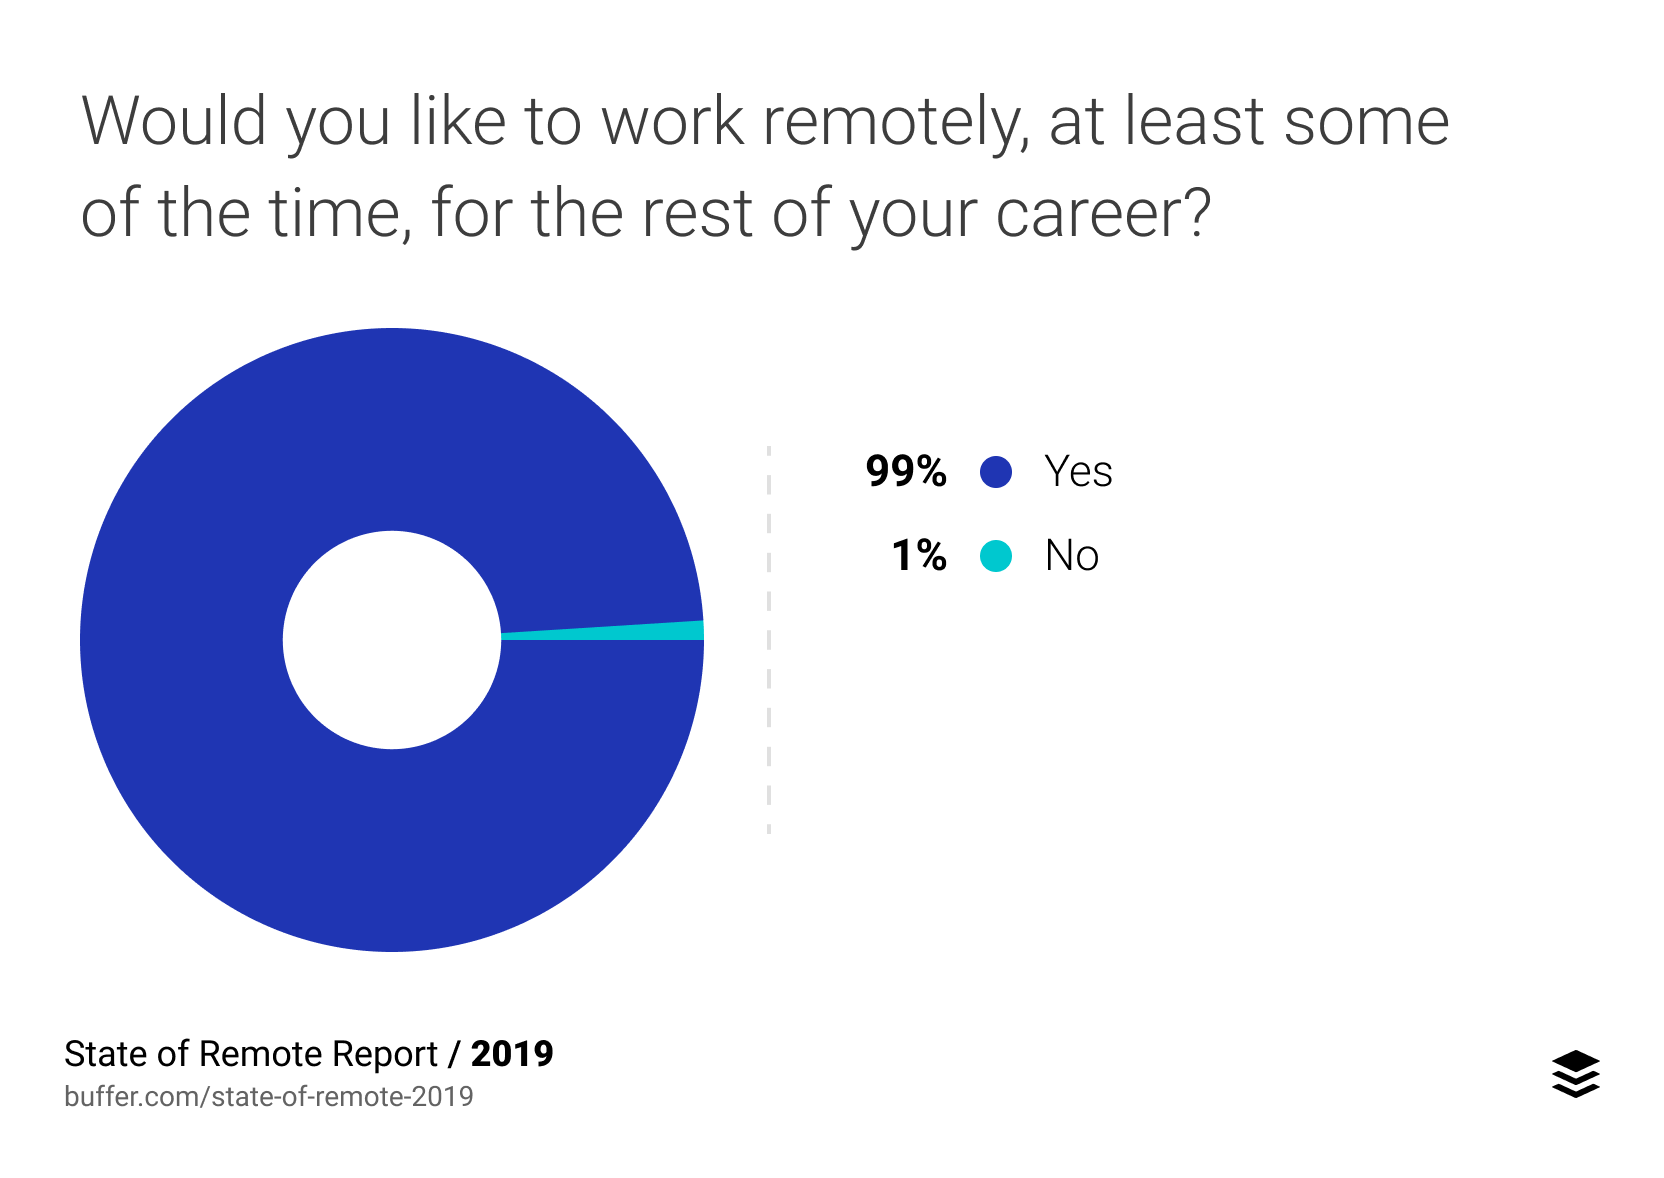 Employees want the option of working remotely